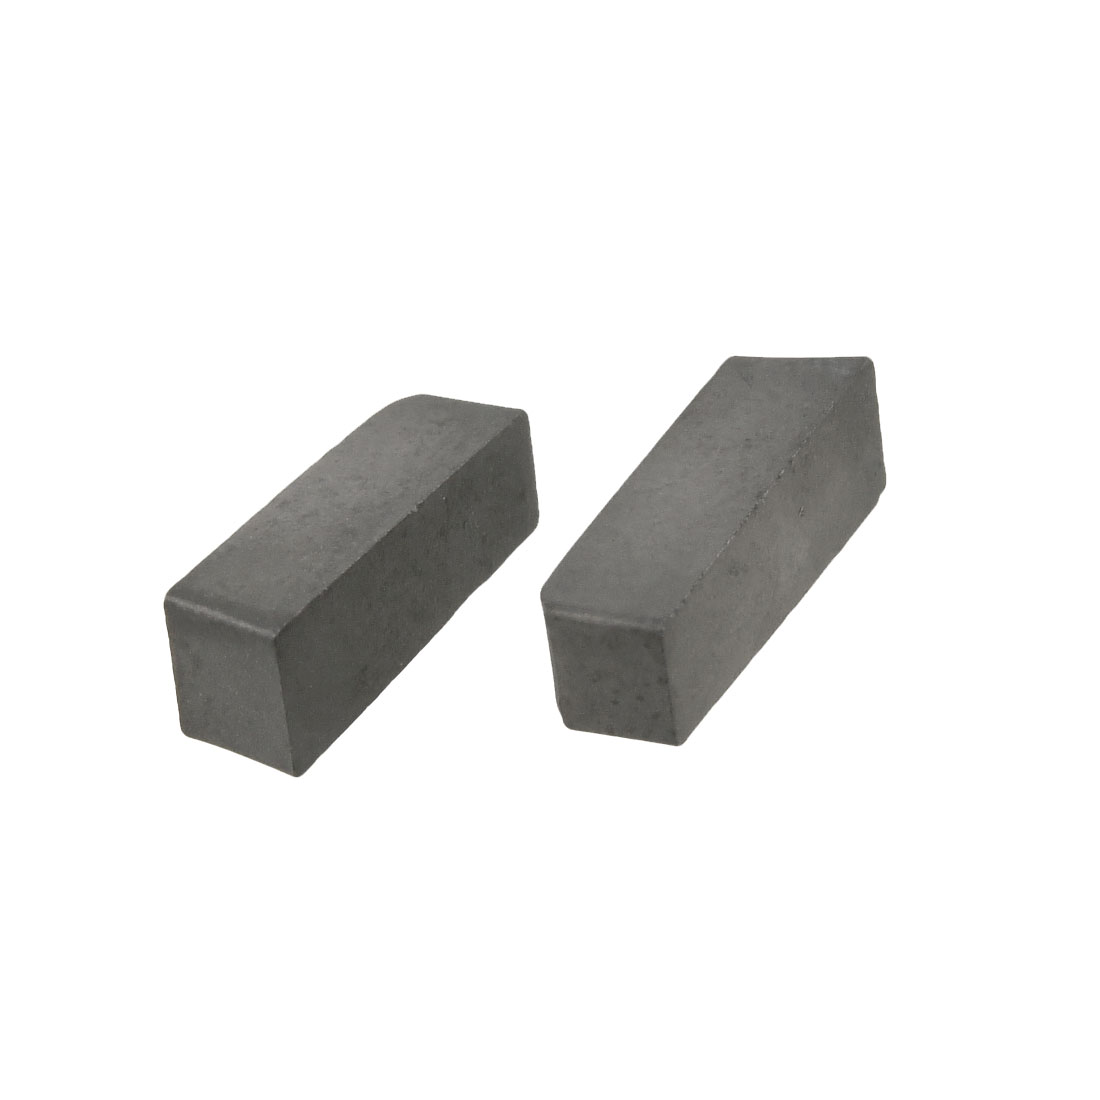 2 Pcs Square Cemented Carbide Inserts for Stainless Steel Incision